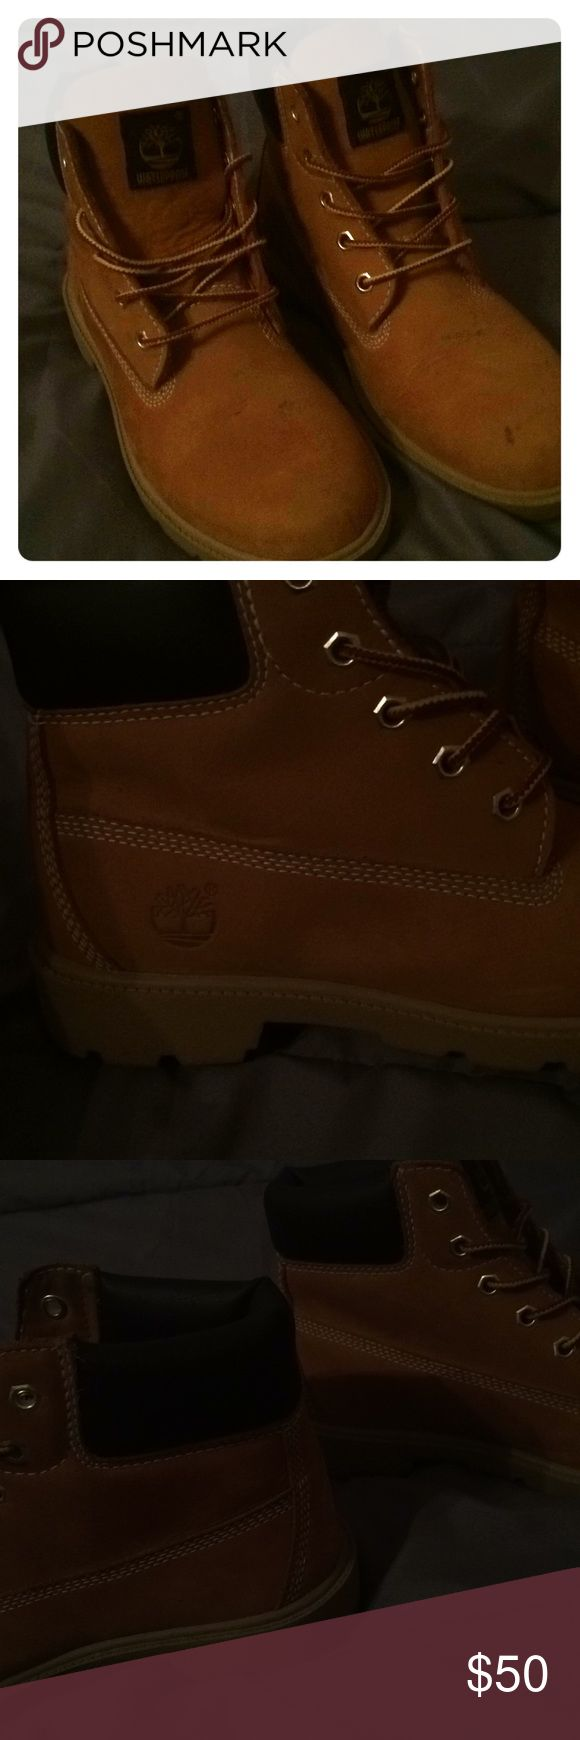 Girls timberlands. Waterproof. Size 4. Worn twice Like new. Only worn them twice. Can fit girls size 4 or 5 Timberland Shoes Ankle Boots & Booties